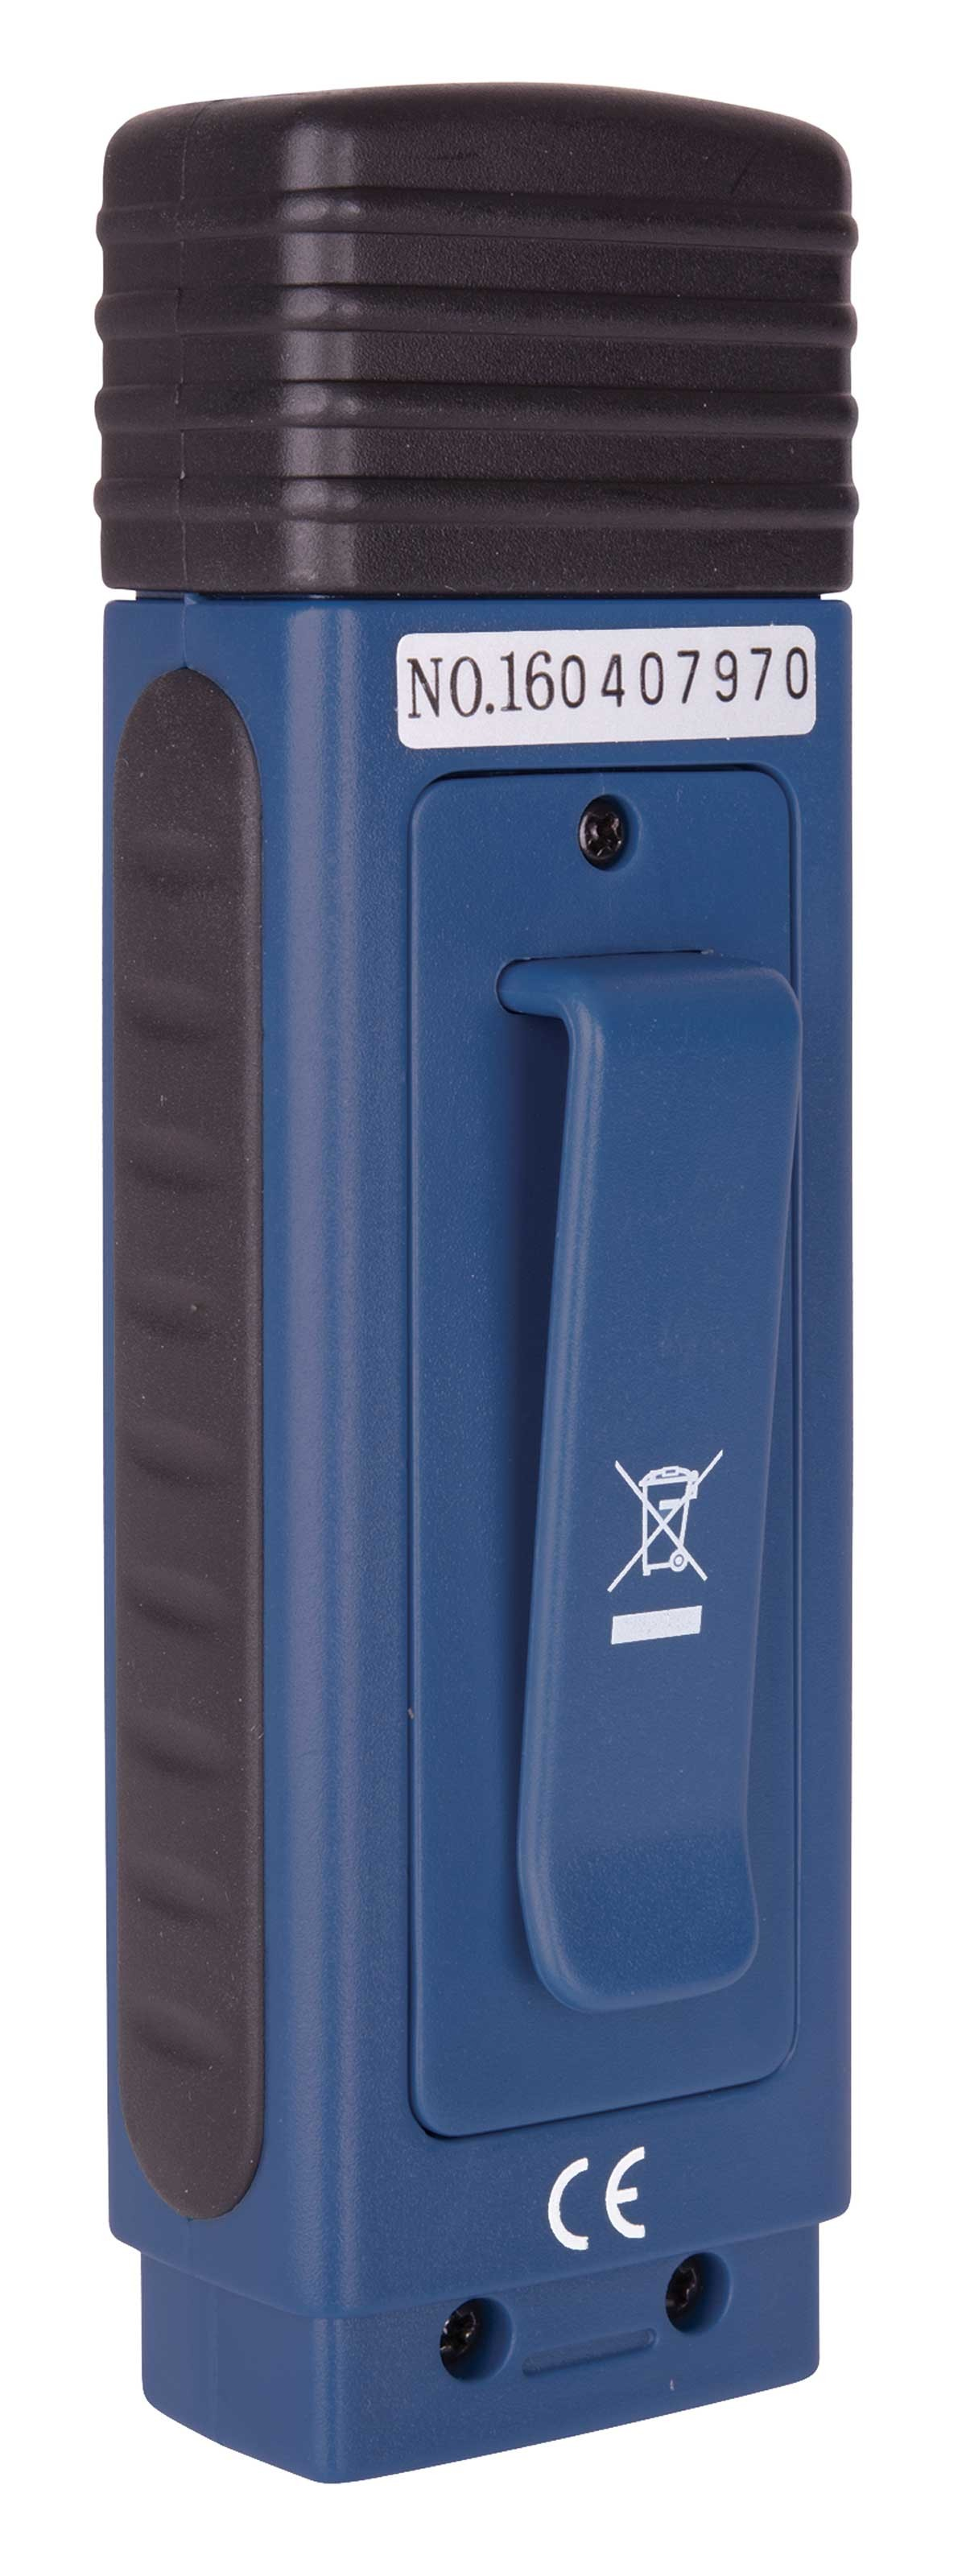 REED R6013 Pocket Size Moisture Detector-REED R6013 2